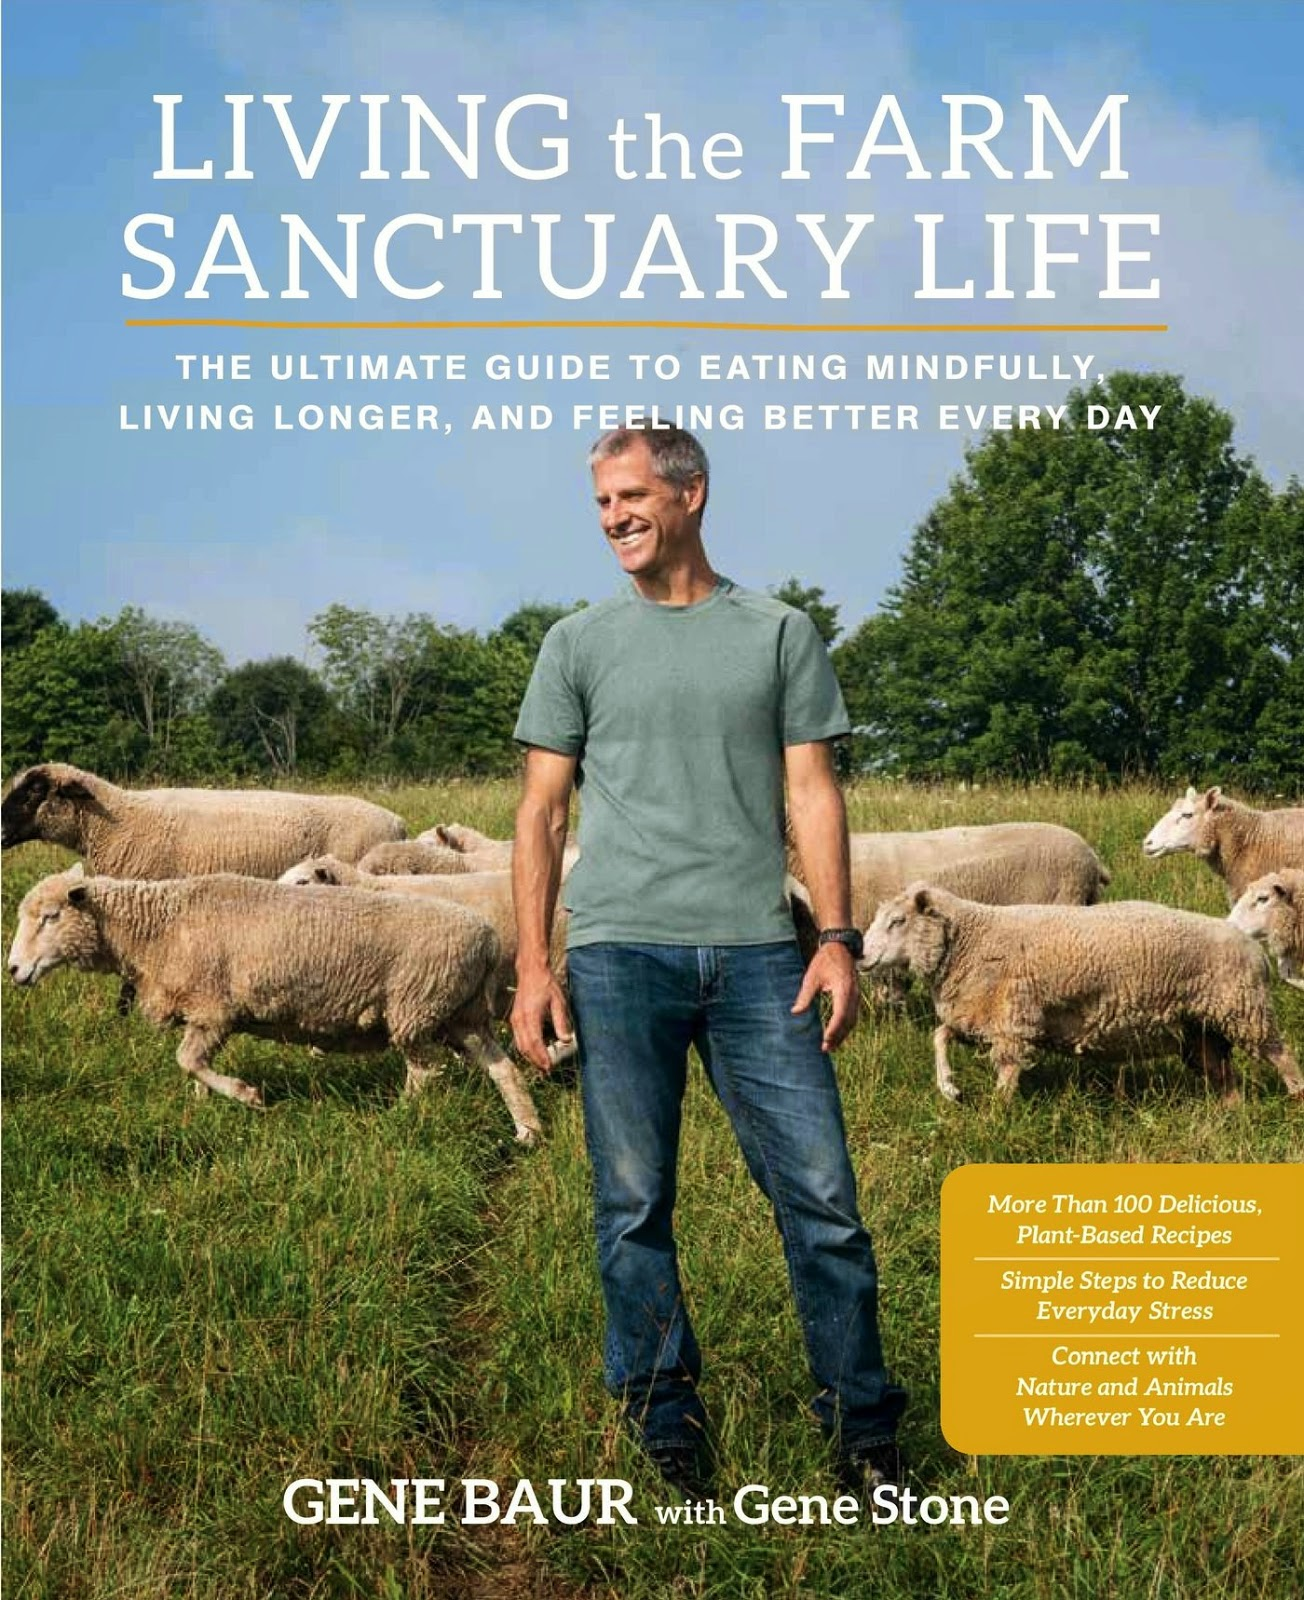 Living the Farm Sanctuary Life: The Ultimate Guide to Eating Mindfully, Living Longer, and Feeling Better Every Day by Gene Baur